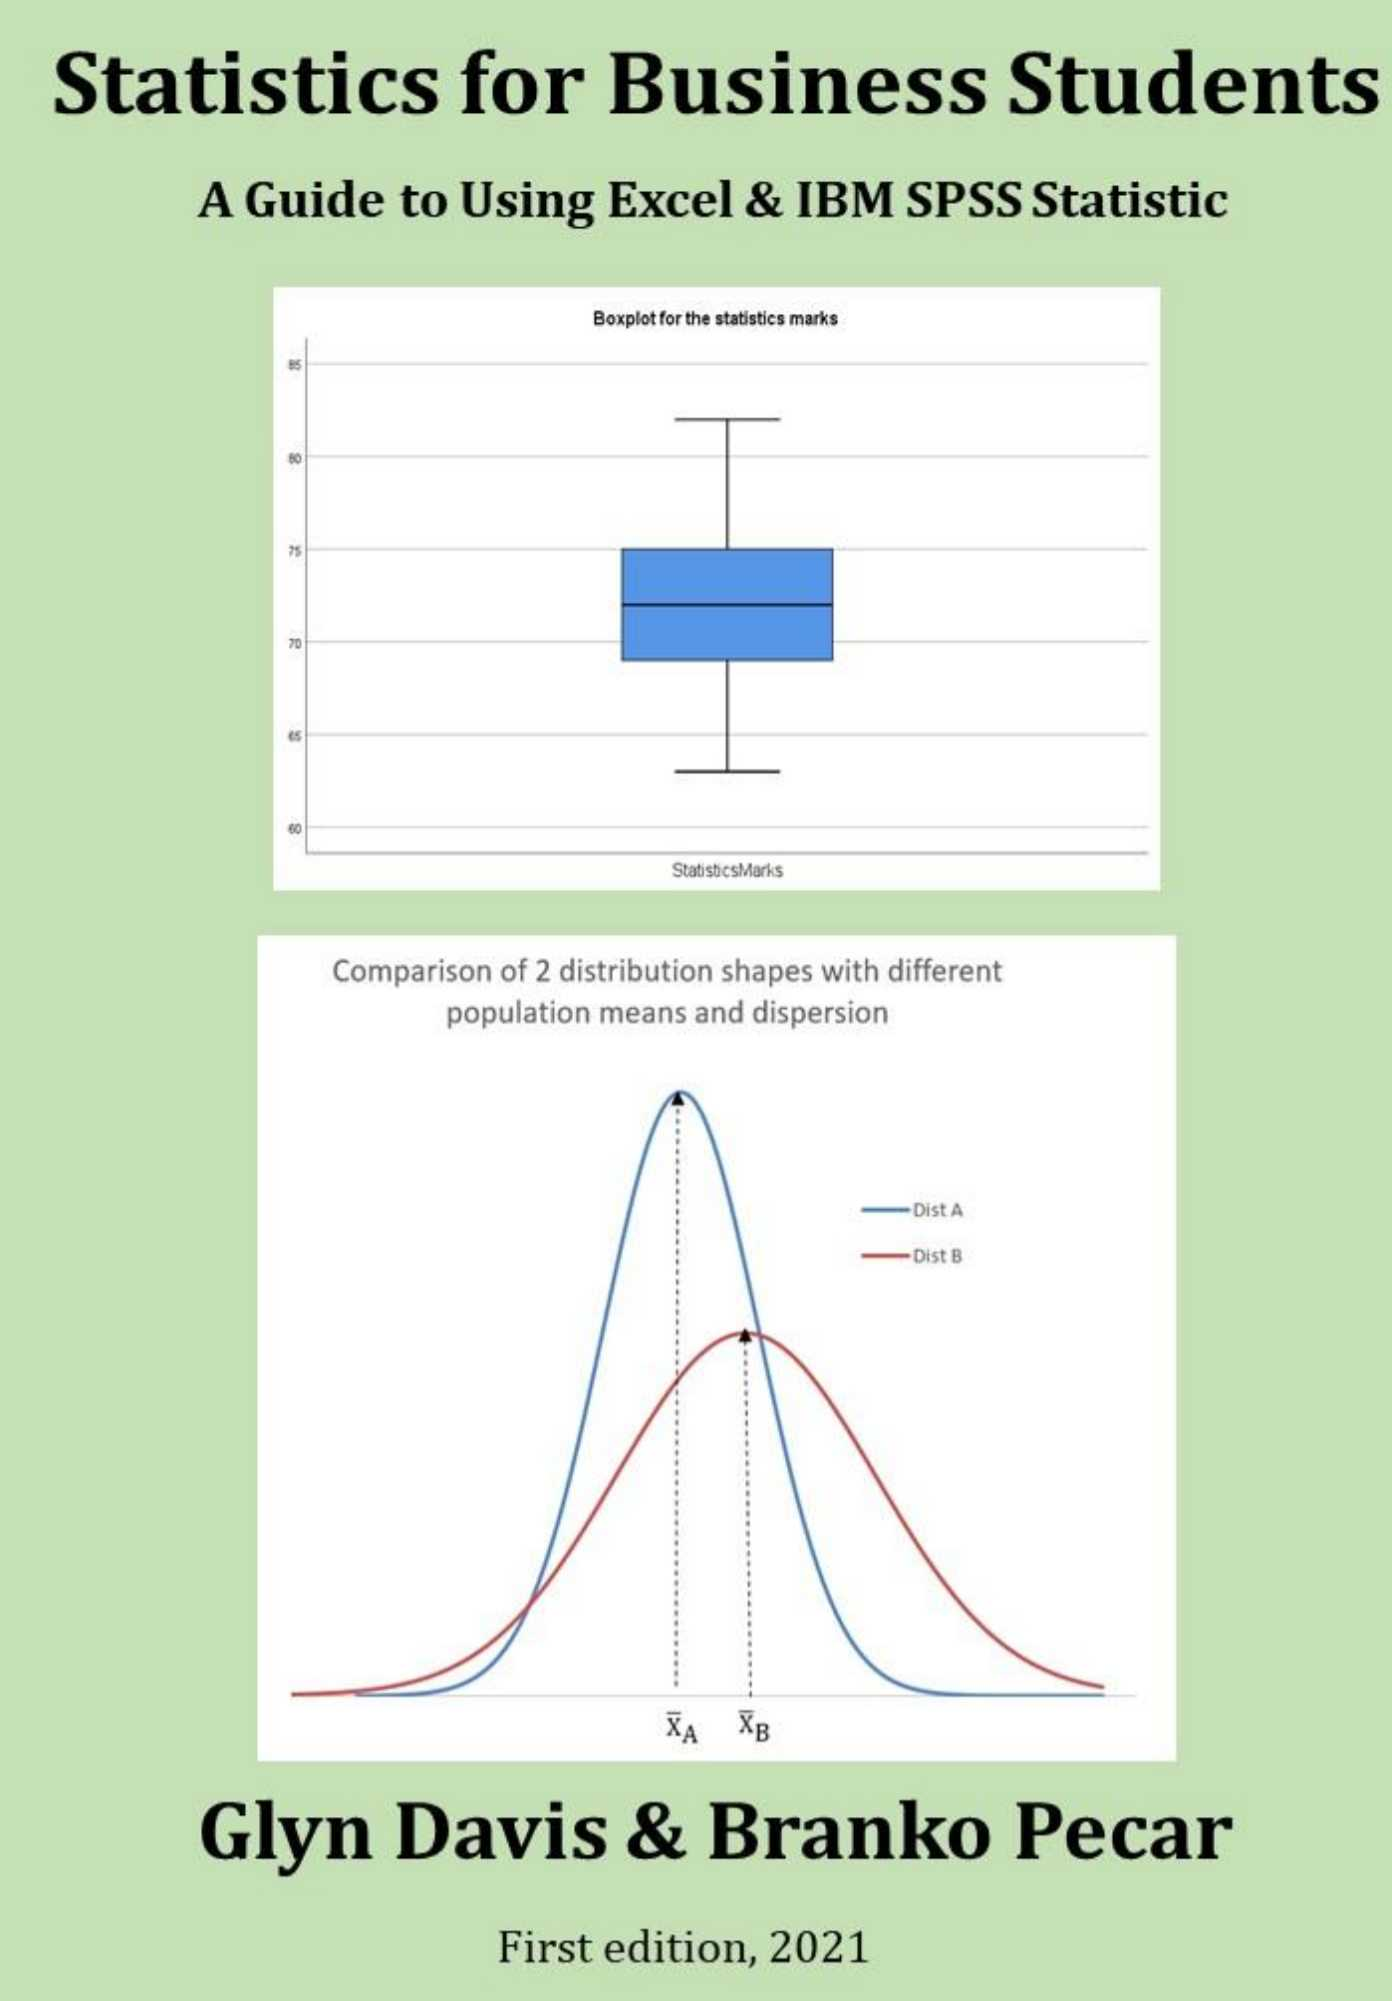 Statistics for Business Students: A Guide to Using Excel & IBM SPSS Statistics